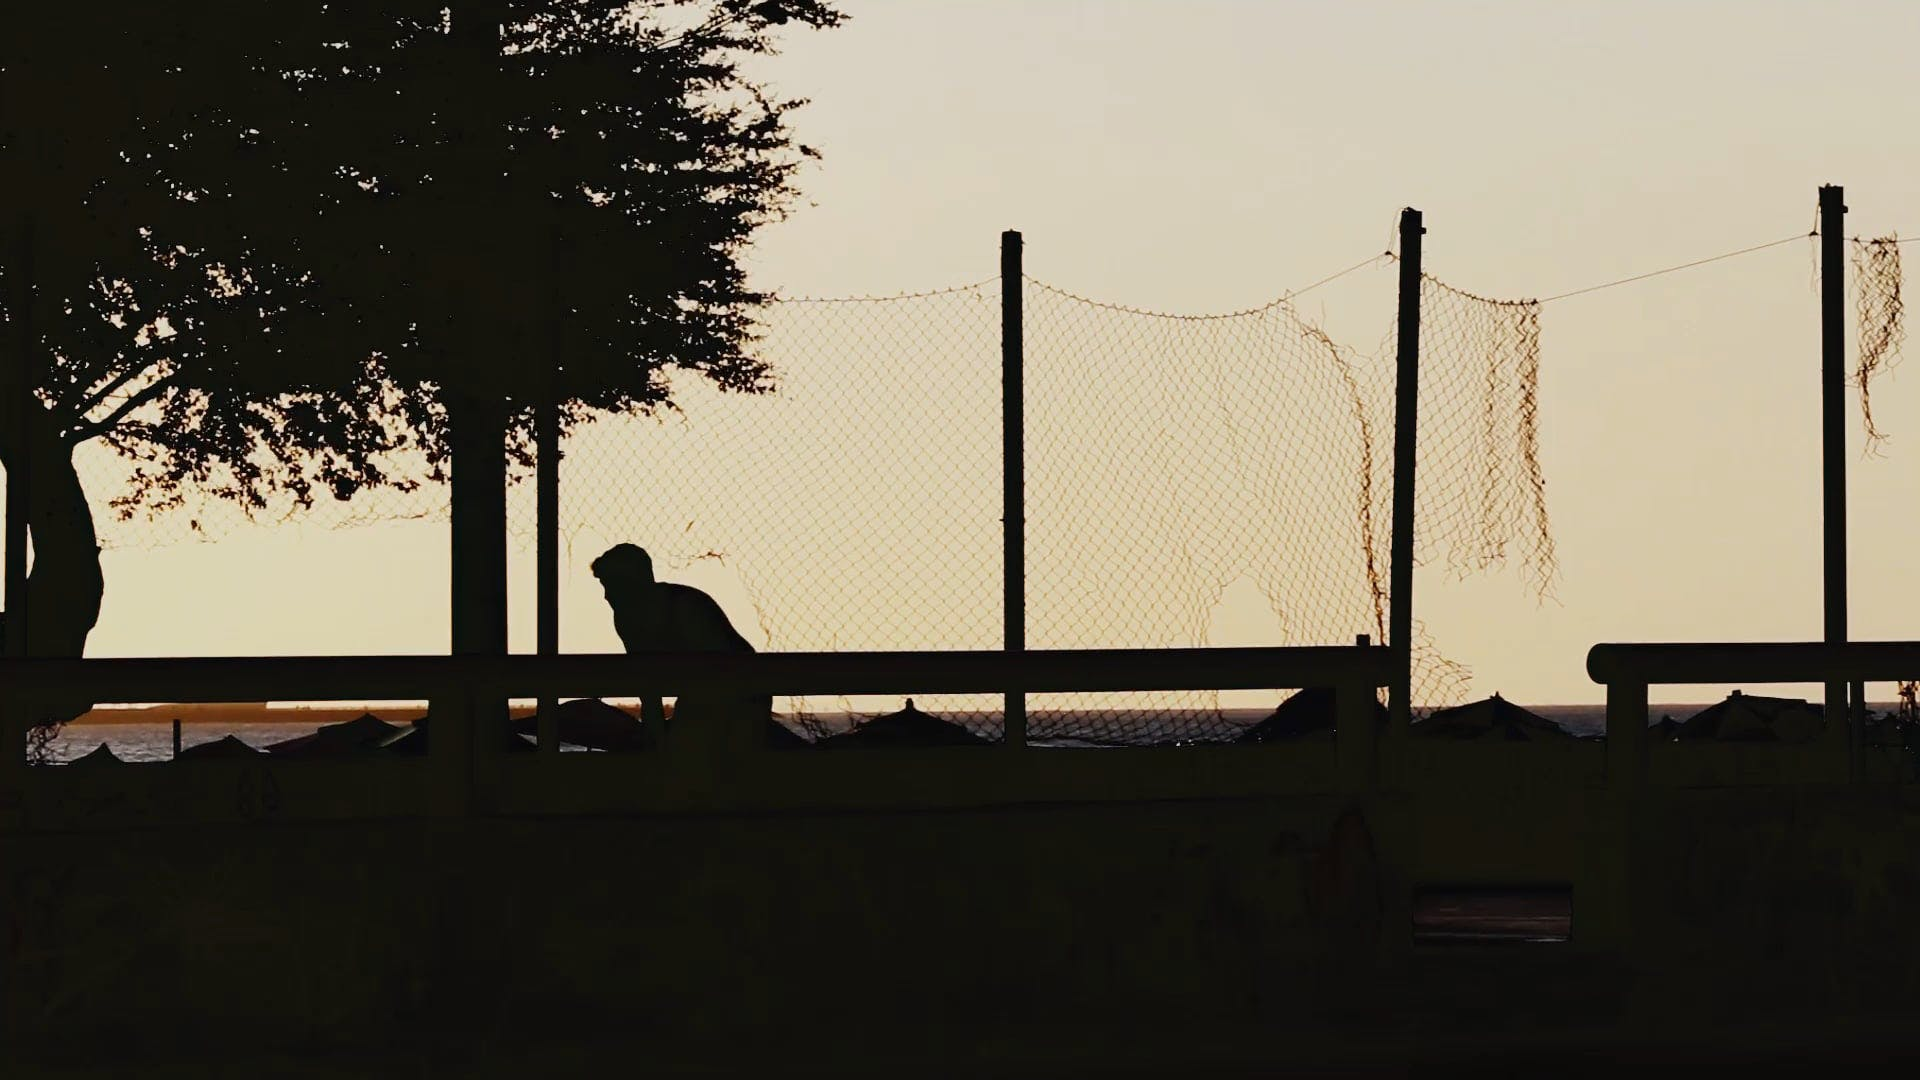 Silhouette Of People Playing Soccer